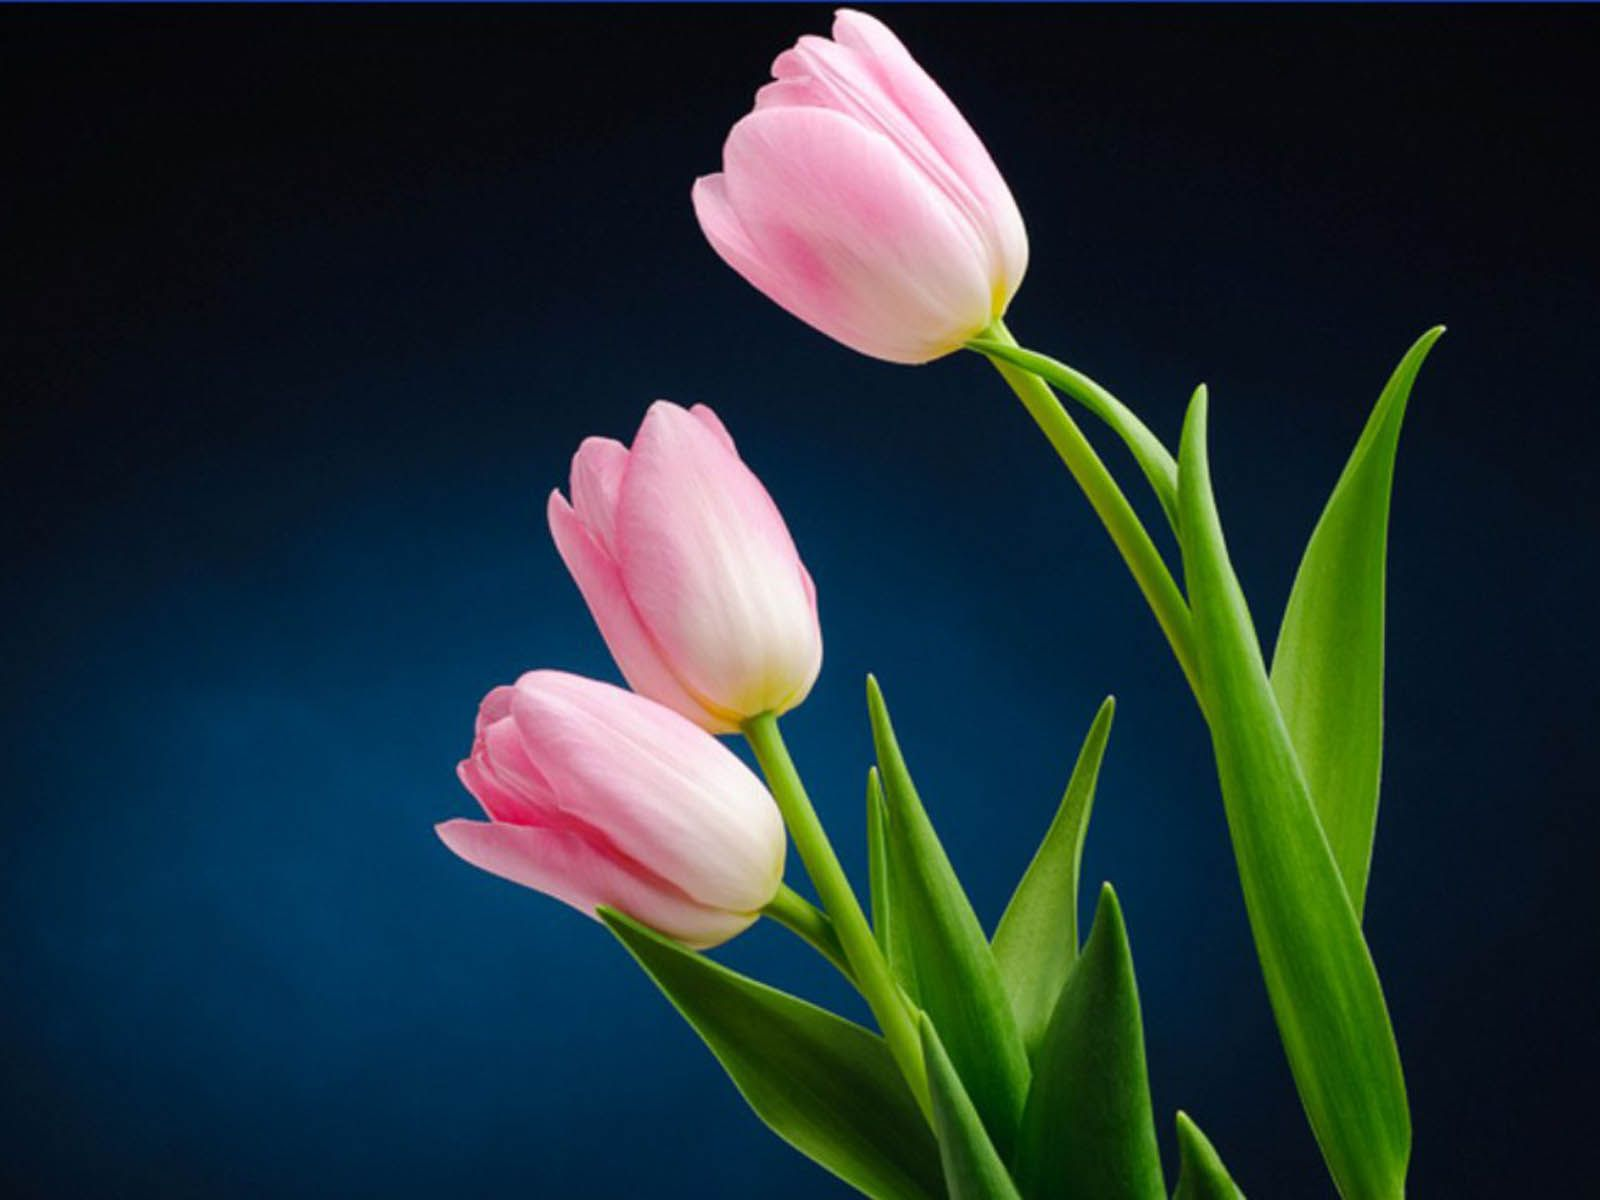 Pink Tulip Flower Pictures 2013 Wallpapers Tulip Flower Pictures Flower Pictures Tulips Flowers